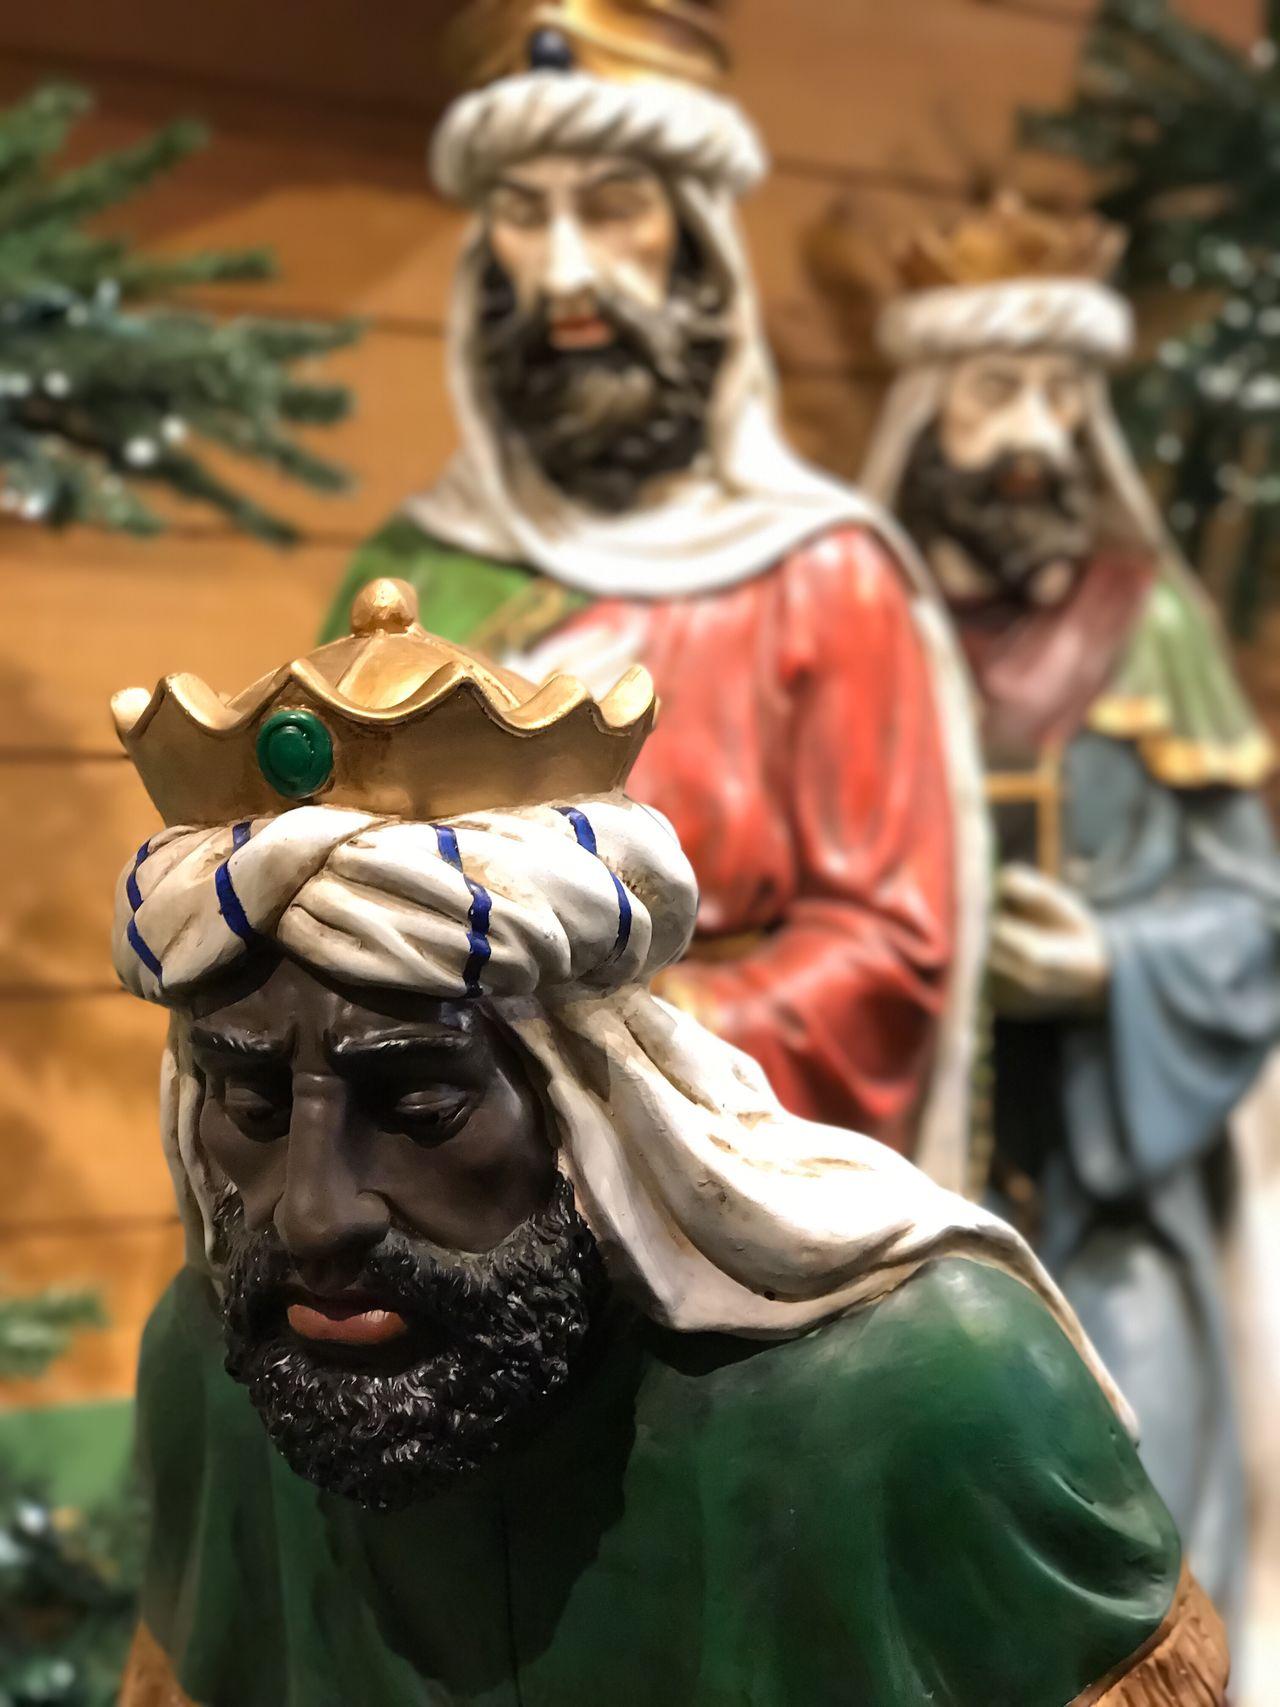 Focus On Foreground Human Representation Statue No People Close-up Sculpture Outdoors Day Christmas Decoration Christmas Store Retail  Nativity Scene Nativity Black Diversity